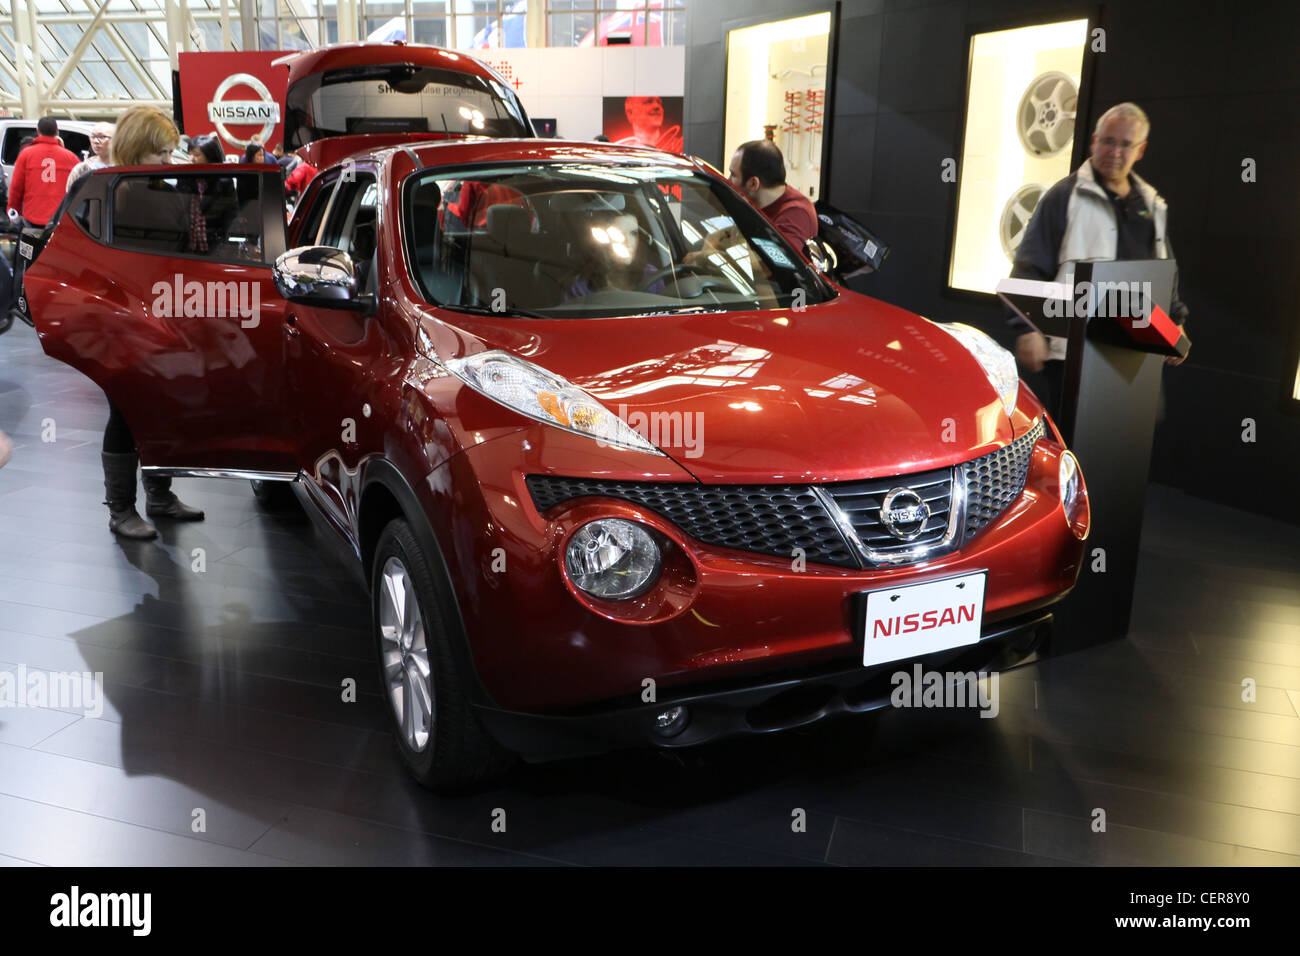 Red Nissan Juke Crossover Vehicle   Stock Image